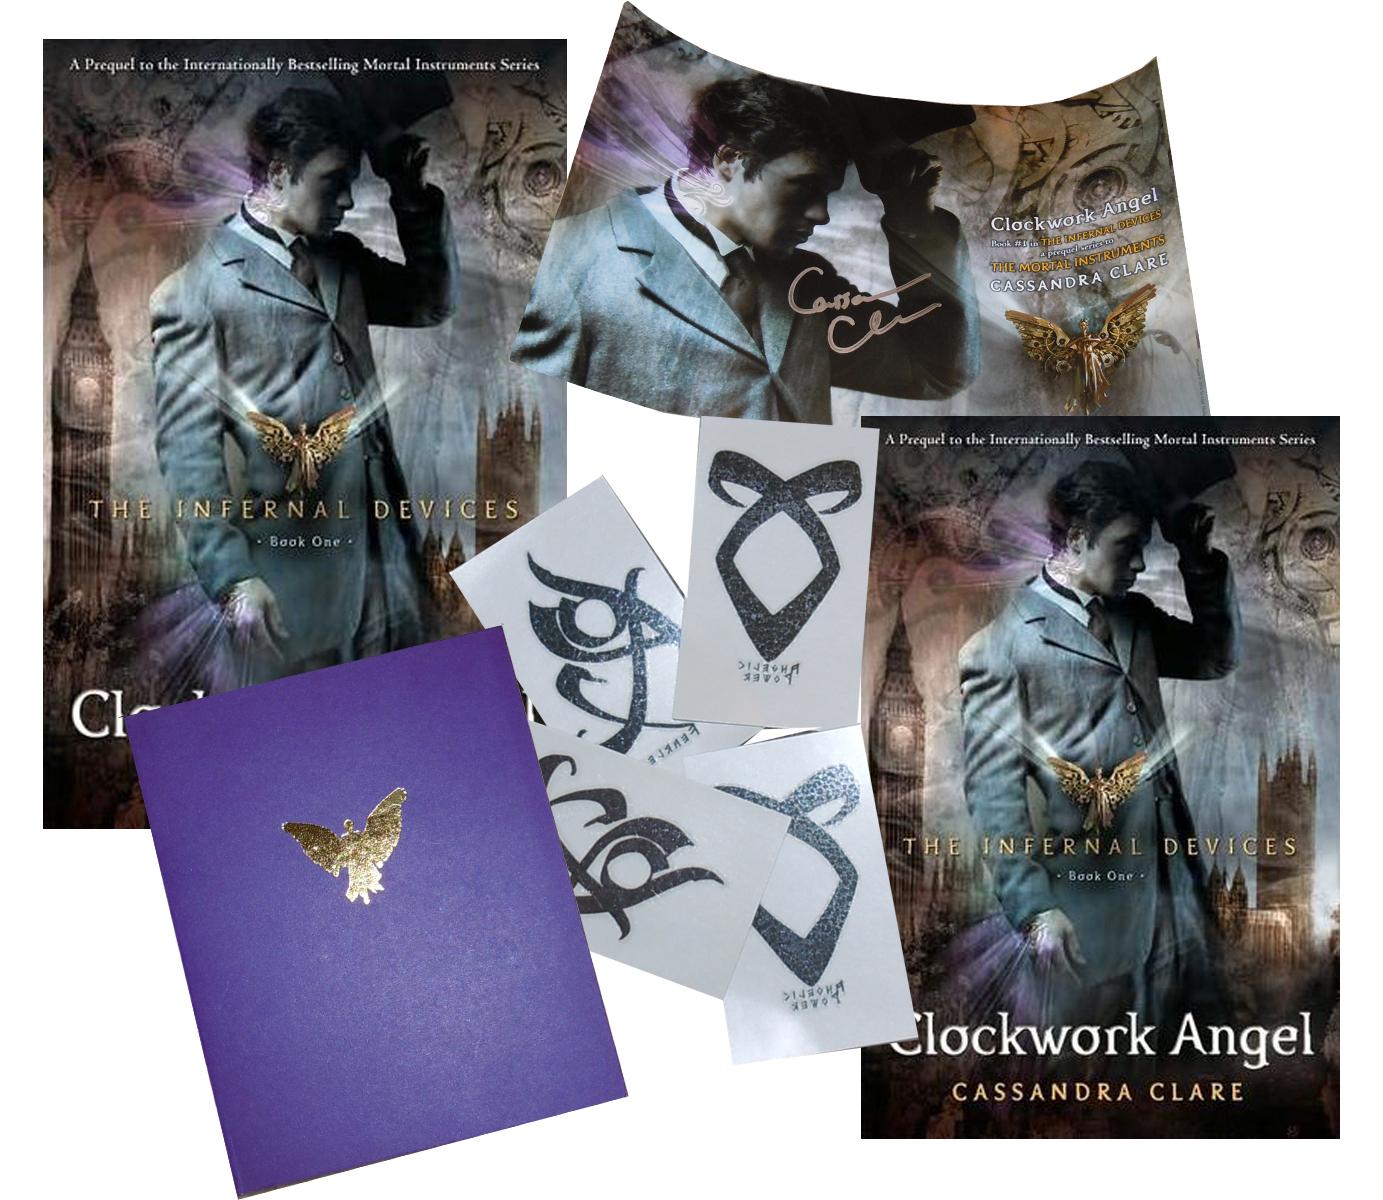 Win Clockwork Angel by Cassandra Clare